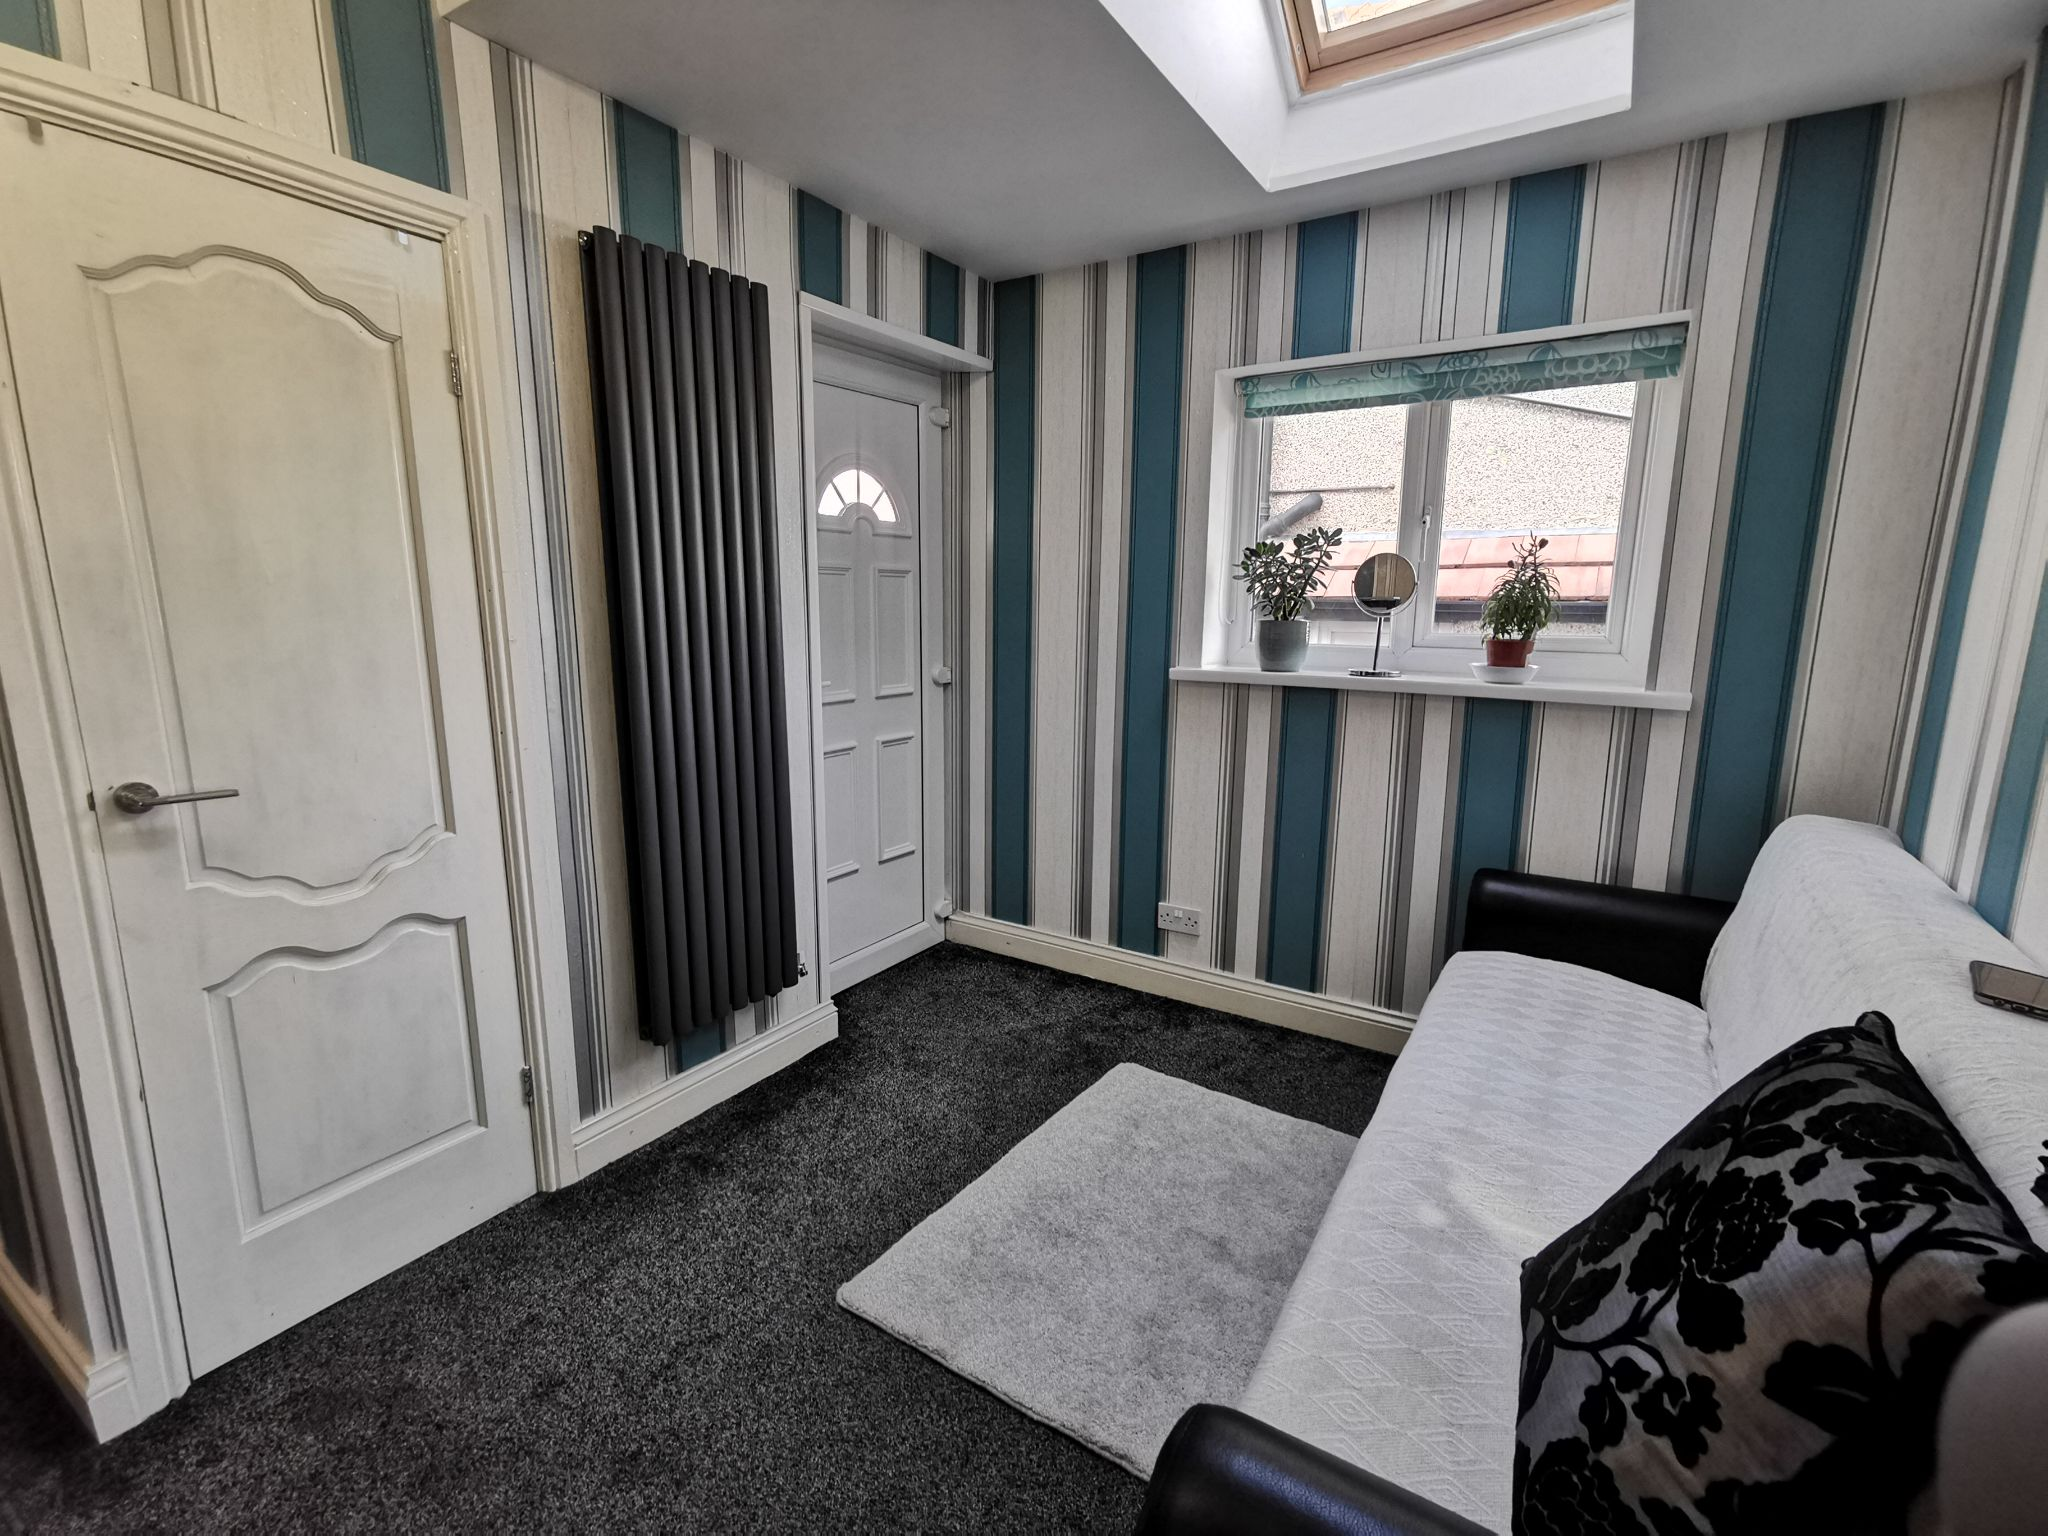 4 bedroom semi-detached house SSTC in Bradford - Photograph 6.